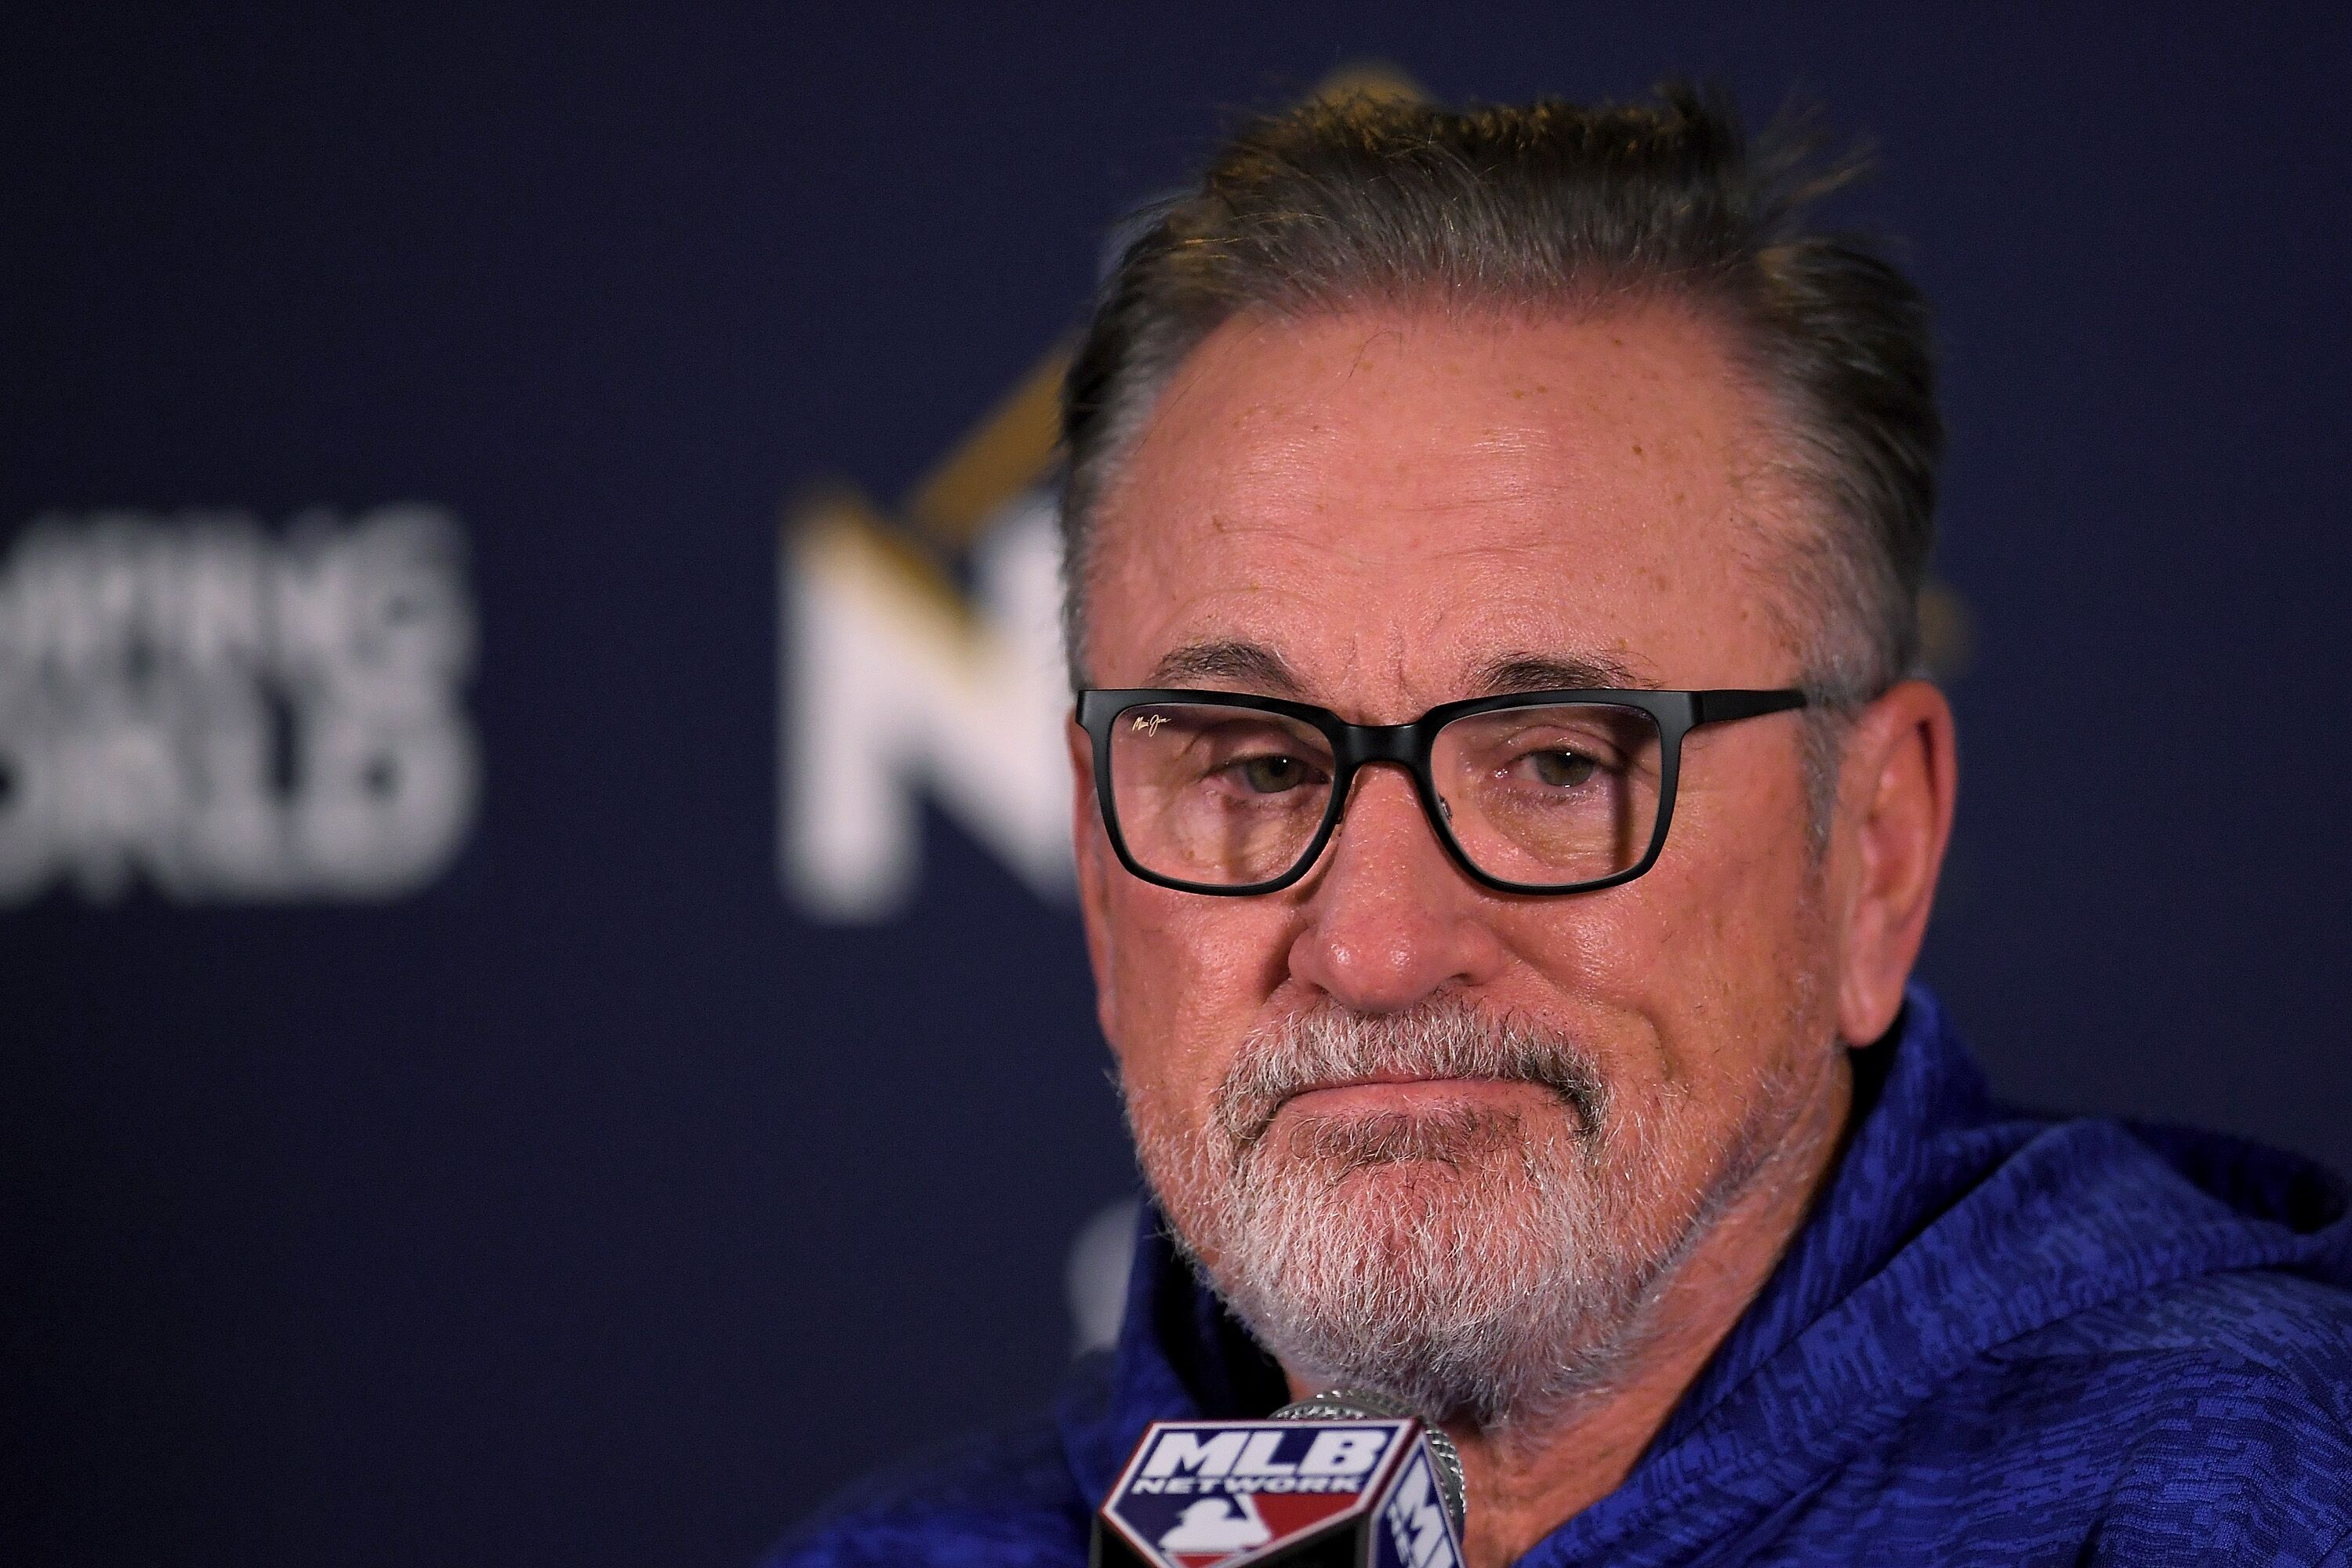 Chicago Cubs: Joe Maddon will lead team to new heights in 2019